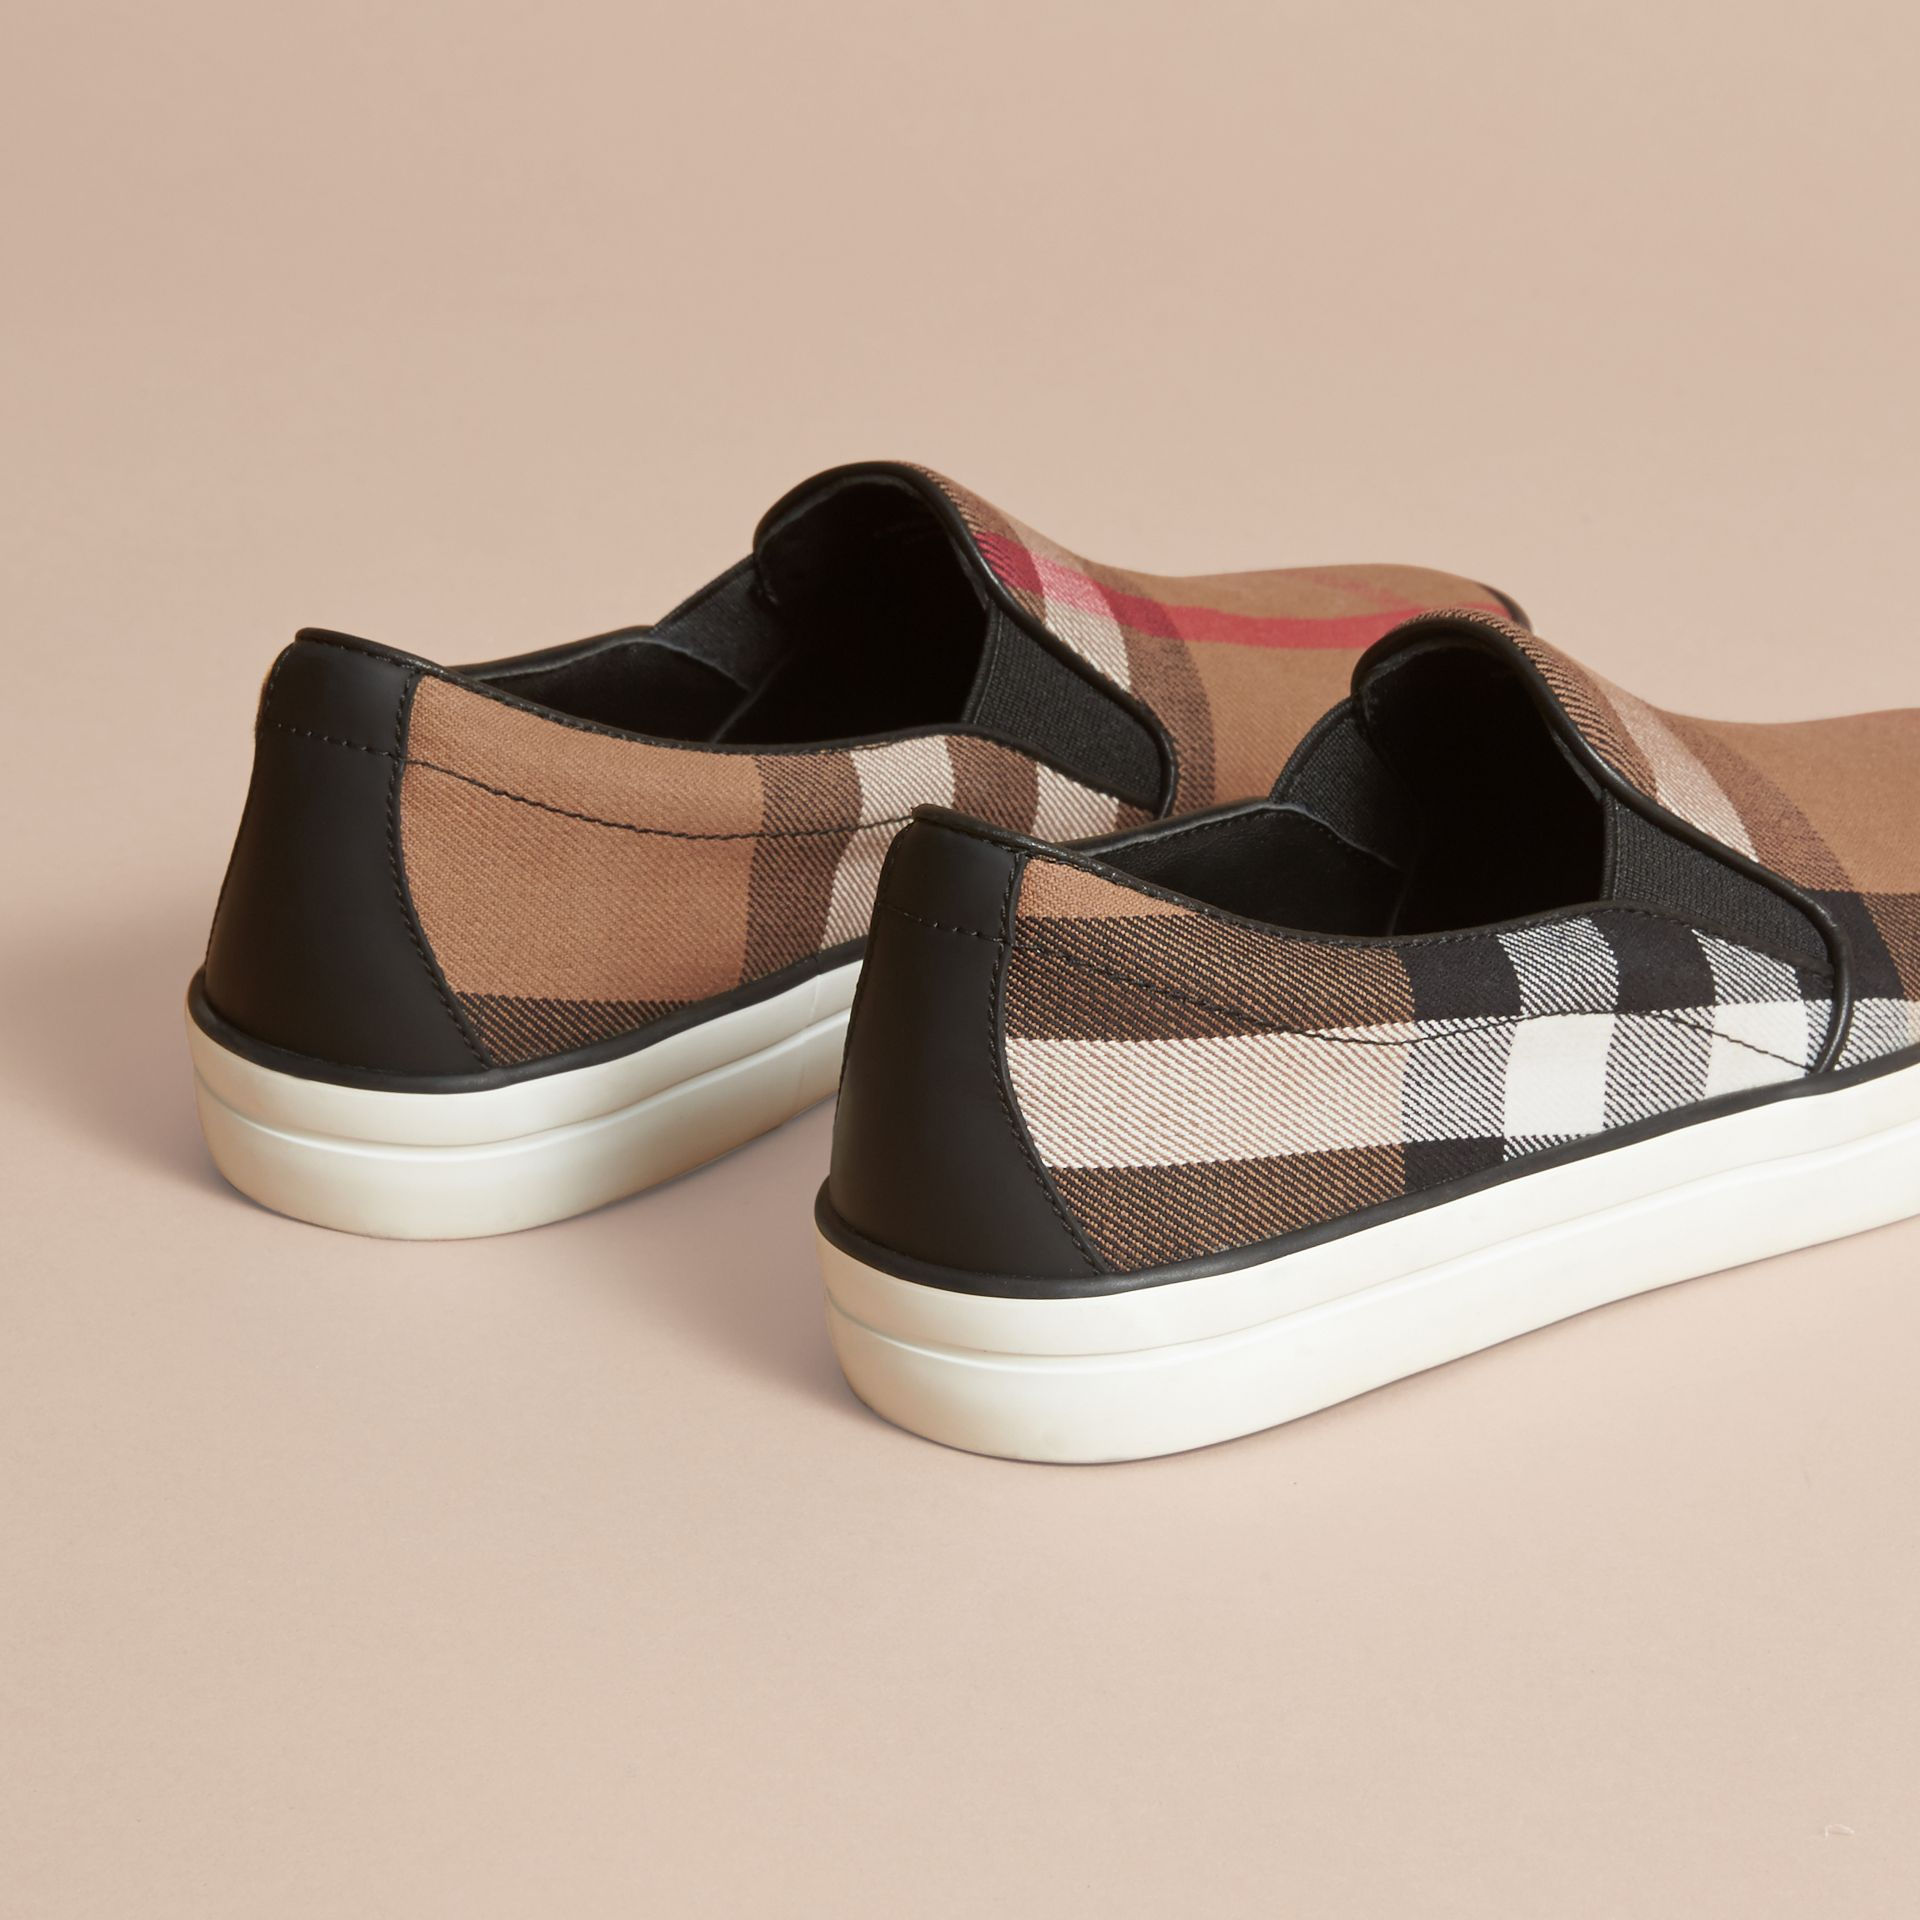 House Check and Leather Slip-on Sneakers in Classic - Women | Burberry - gallery image 3